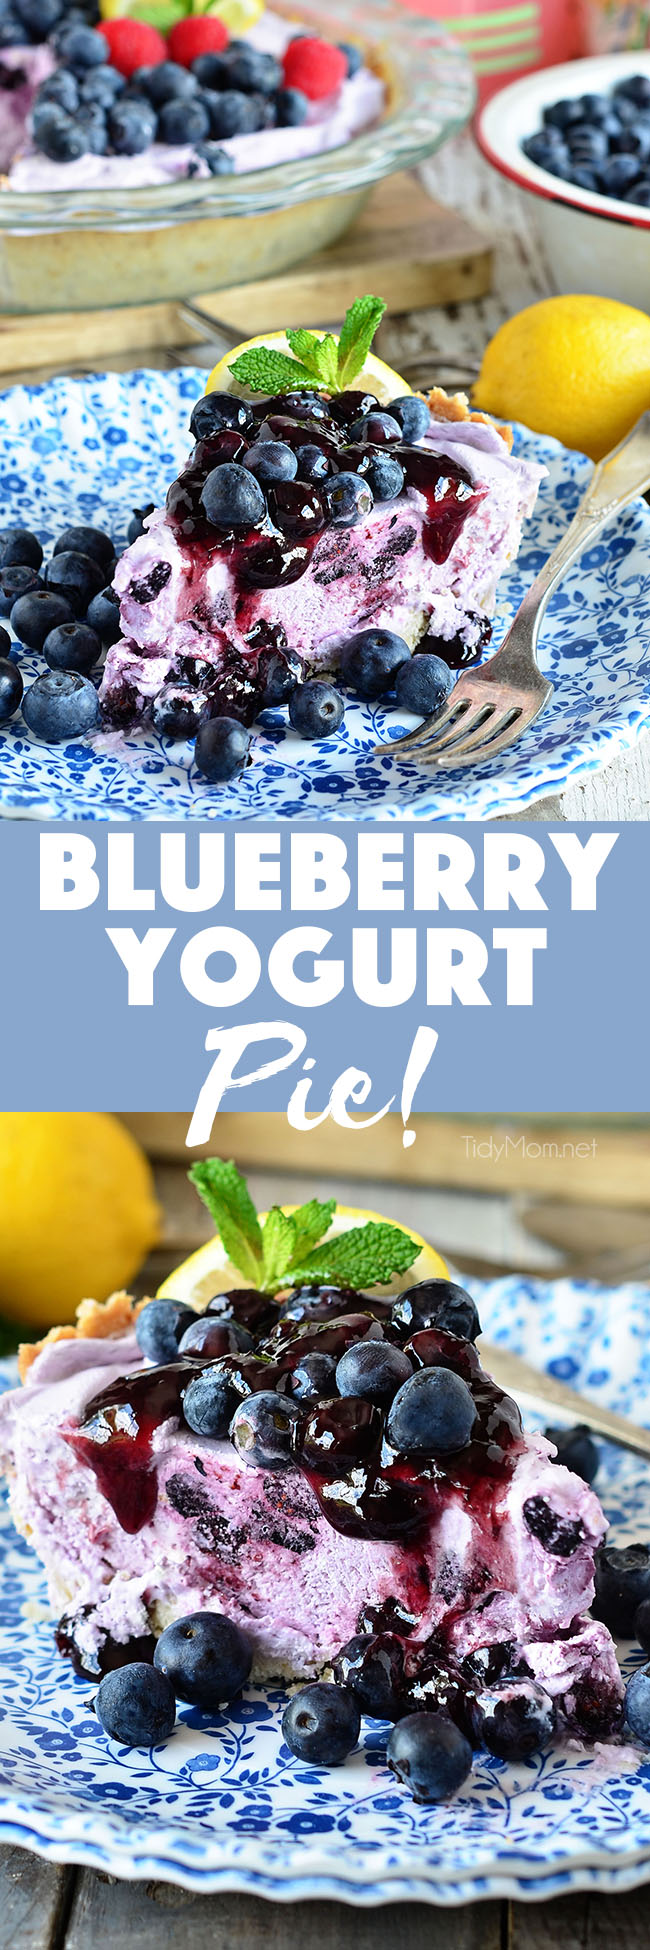 Blueberry Yogurt Pie photo collage